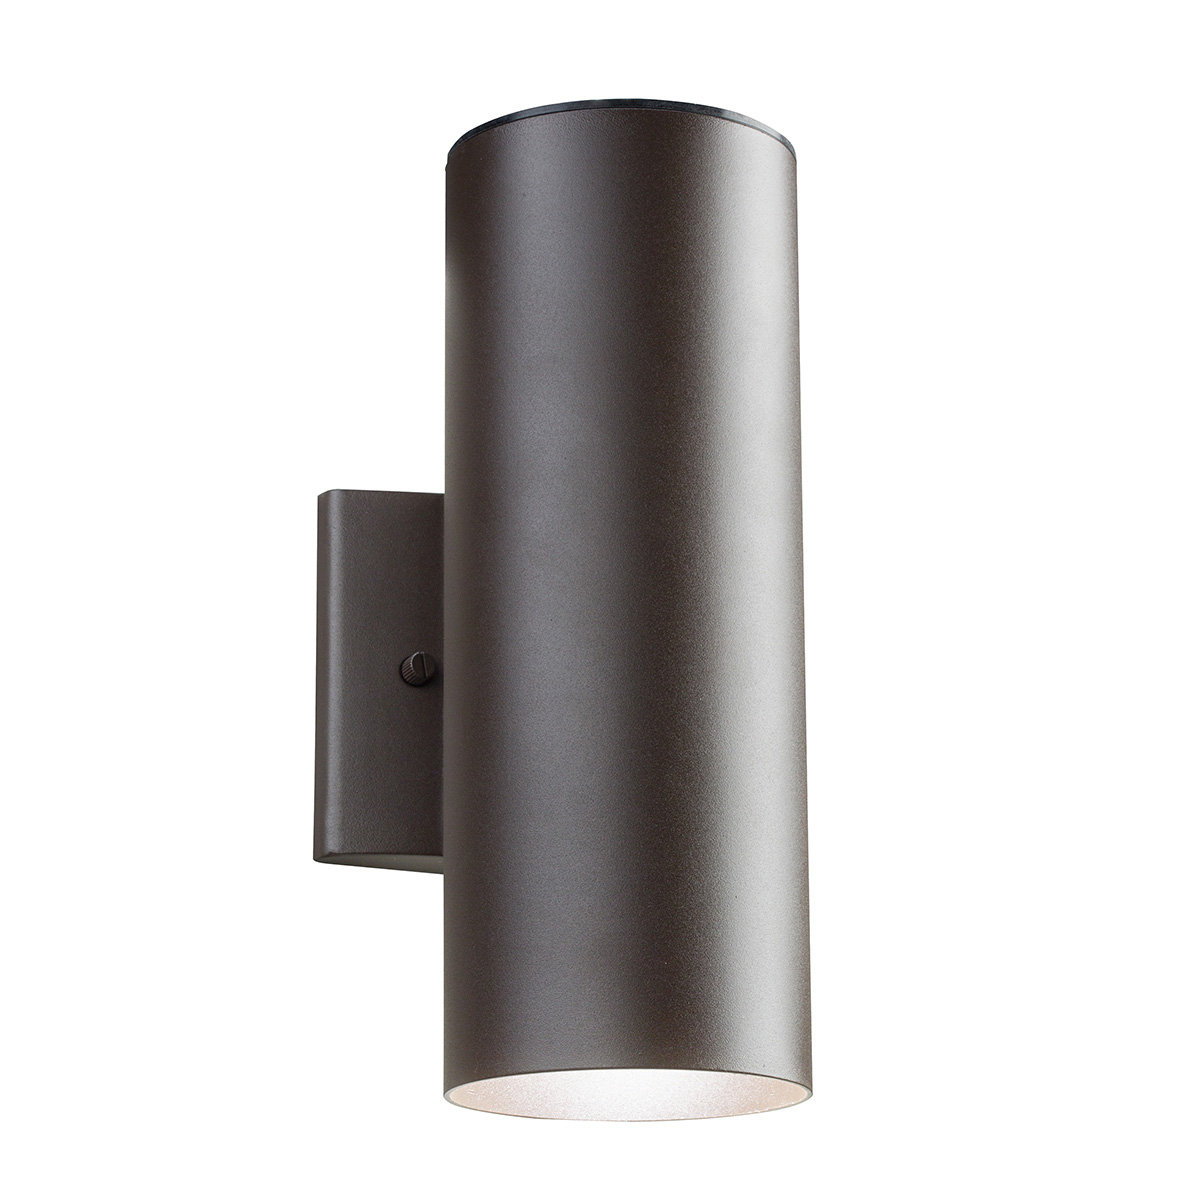 Outdoor led updown wall sconce by kichler 11251azt30 11251 outdoor led updown wall sconce by kichler 11251azt30 amipublicfo Choice Image